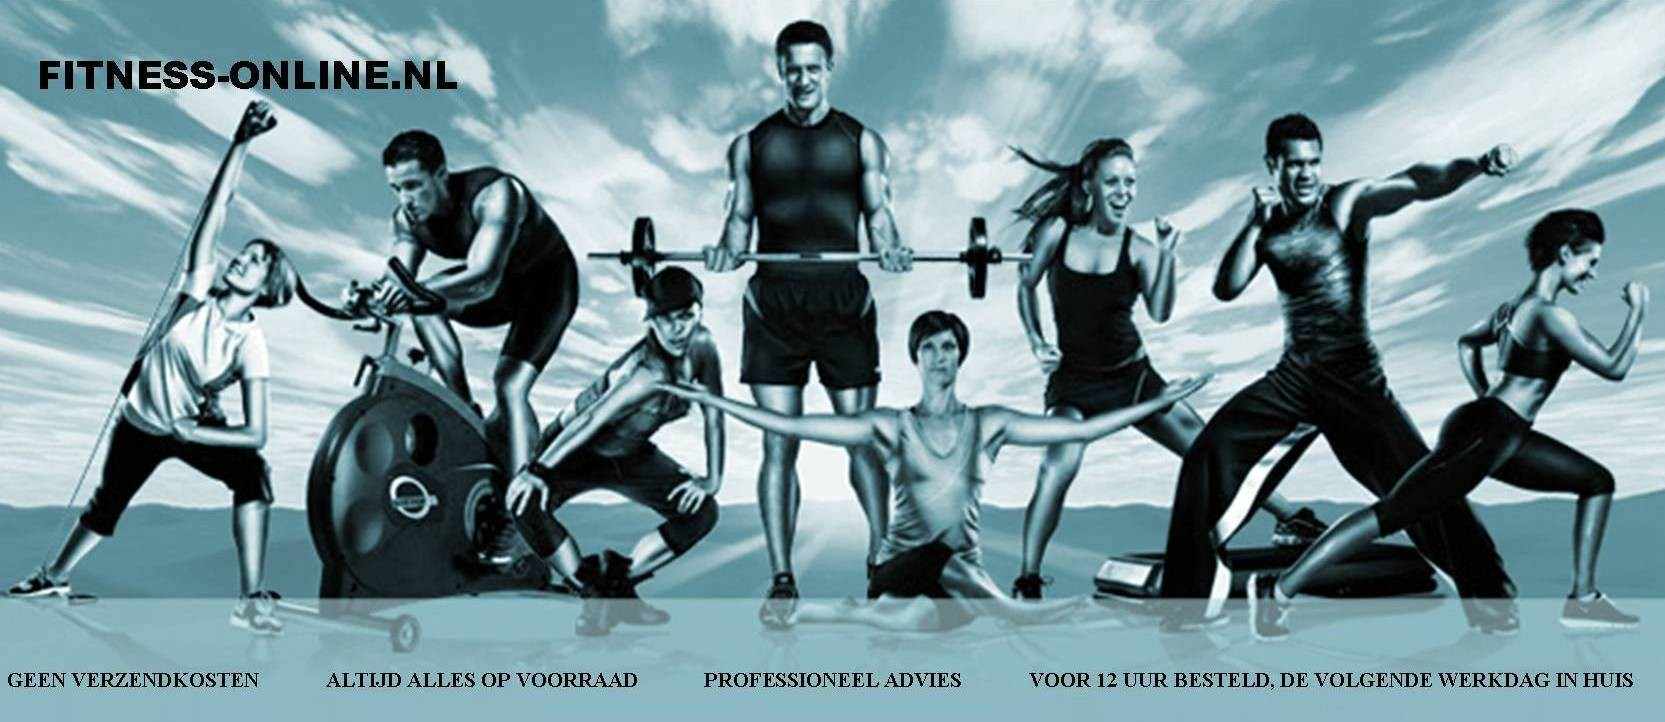 Fitness-Online.nl homepage